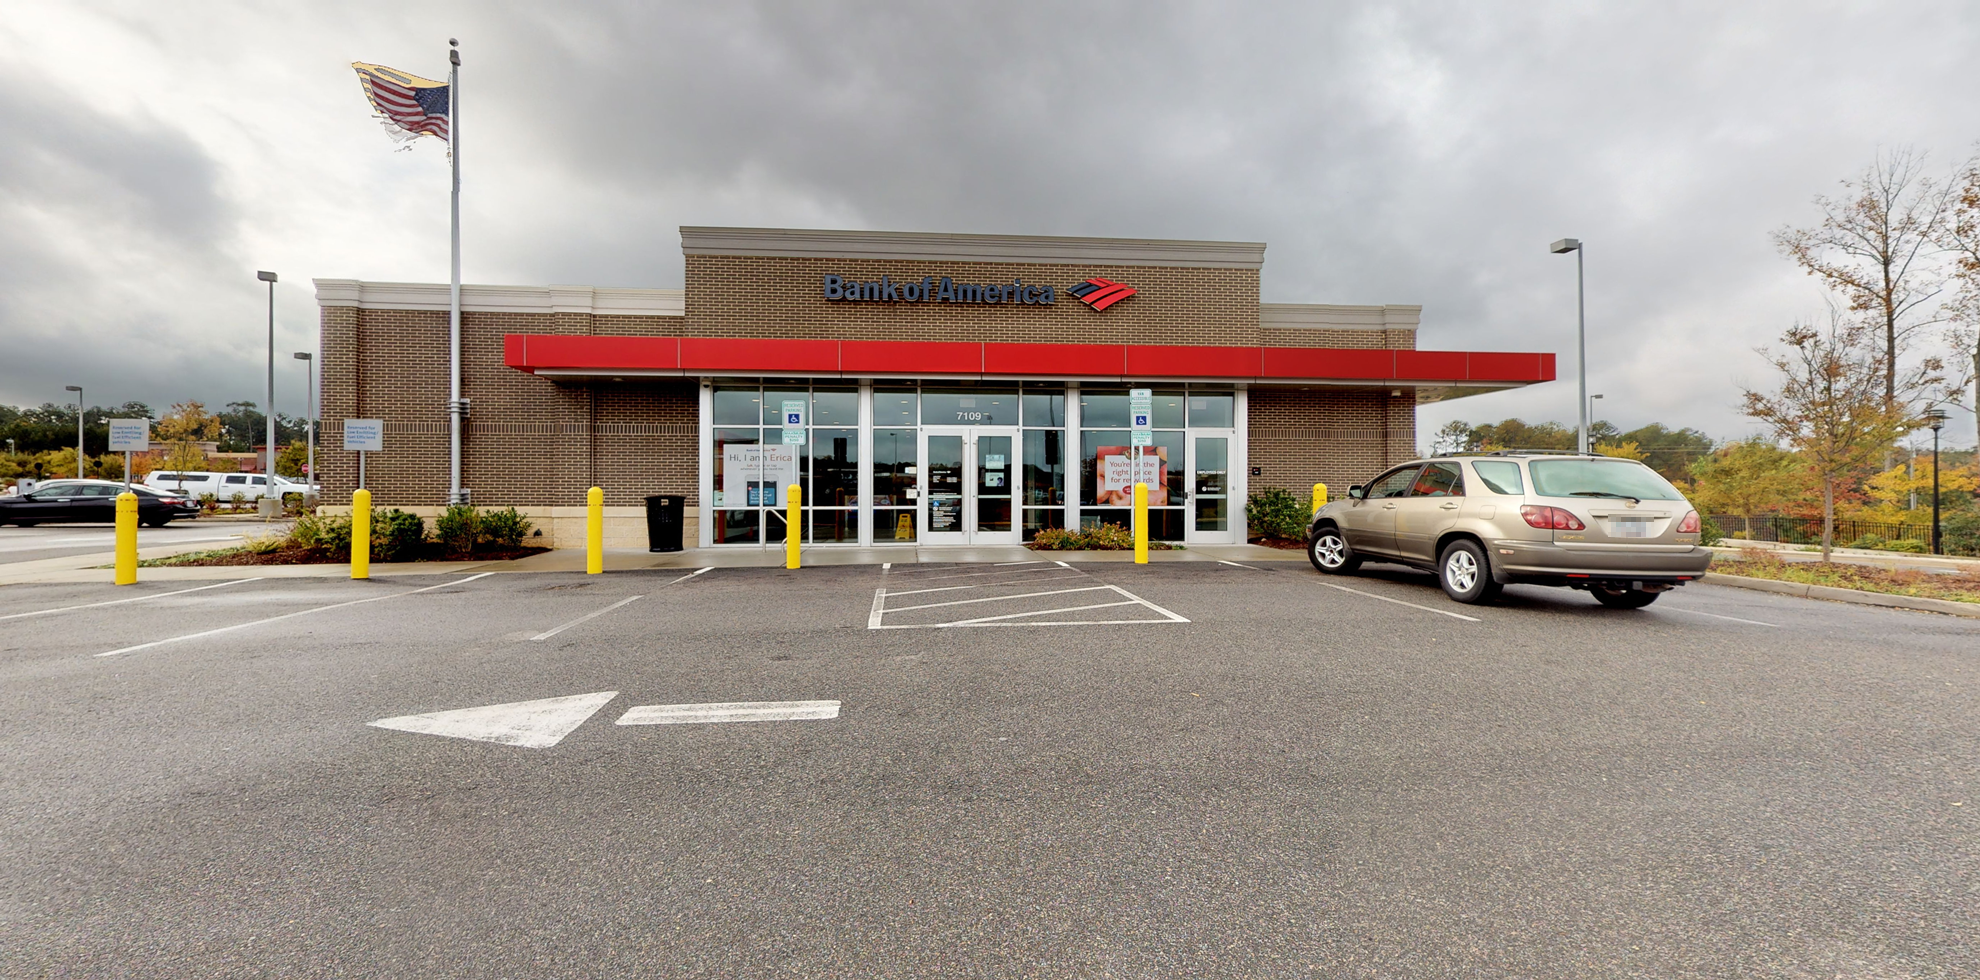 Bank of America financial center with drive-thru ATM | 7109 O'Kelly Chapel Rd, Cary, NC 27519